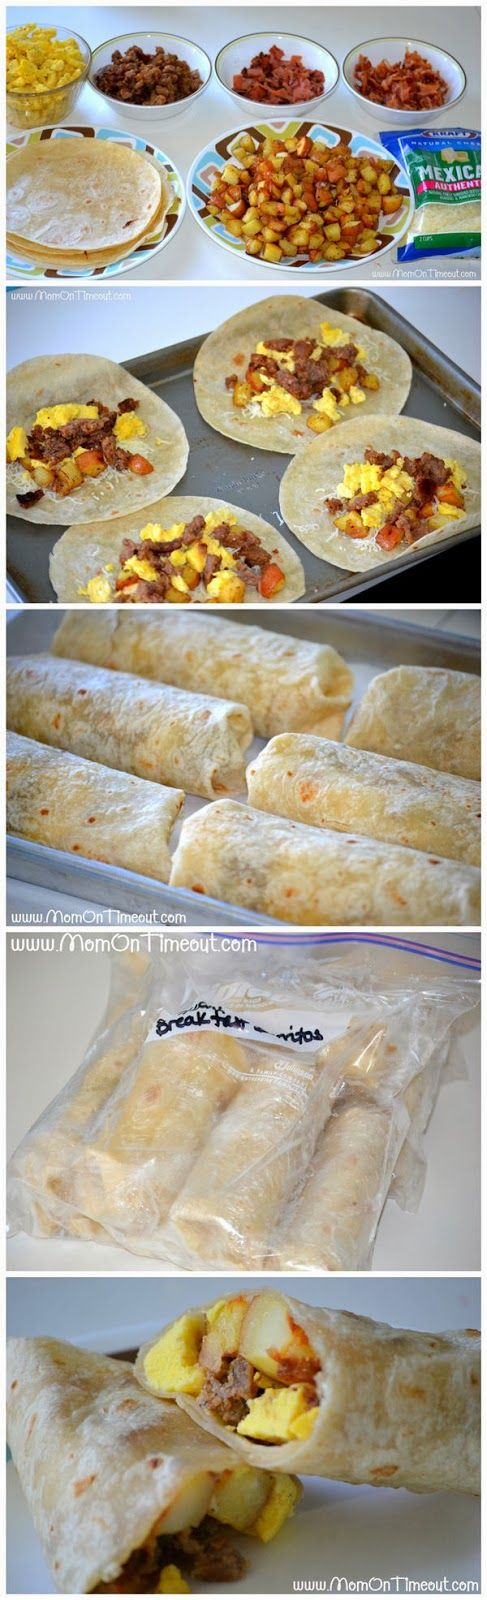 Breakfast Burrito Bonanza – A Freezer Meal Idea - kiss recipe